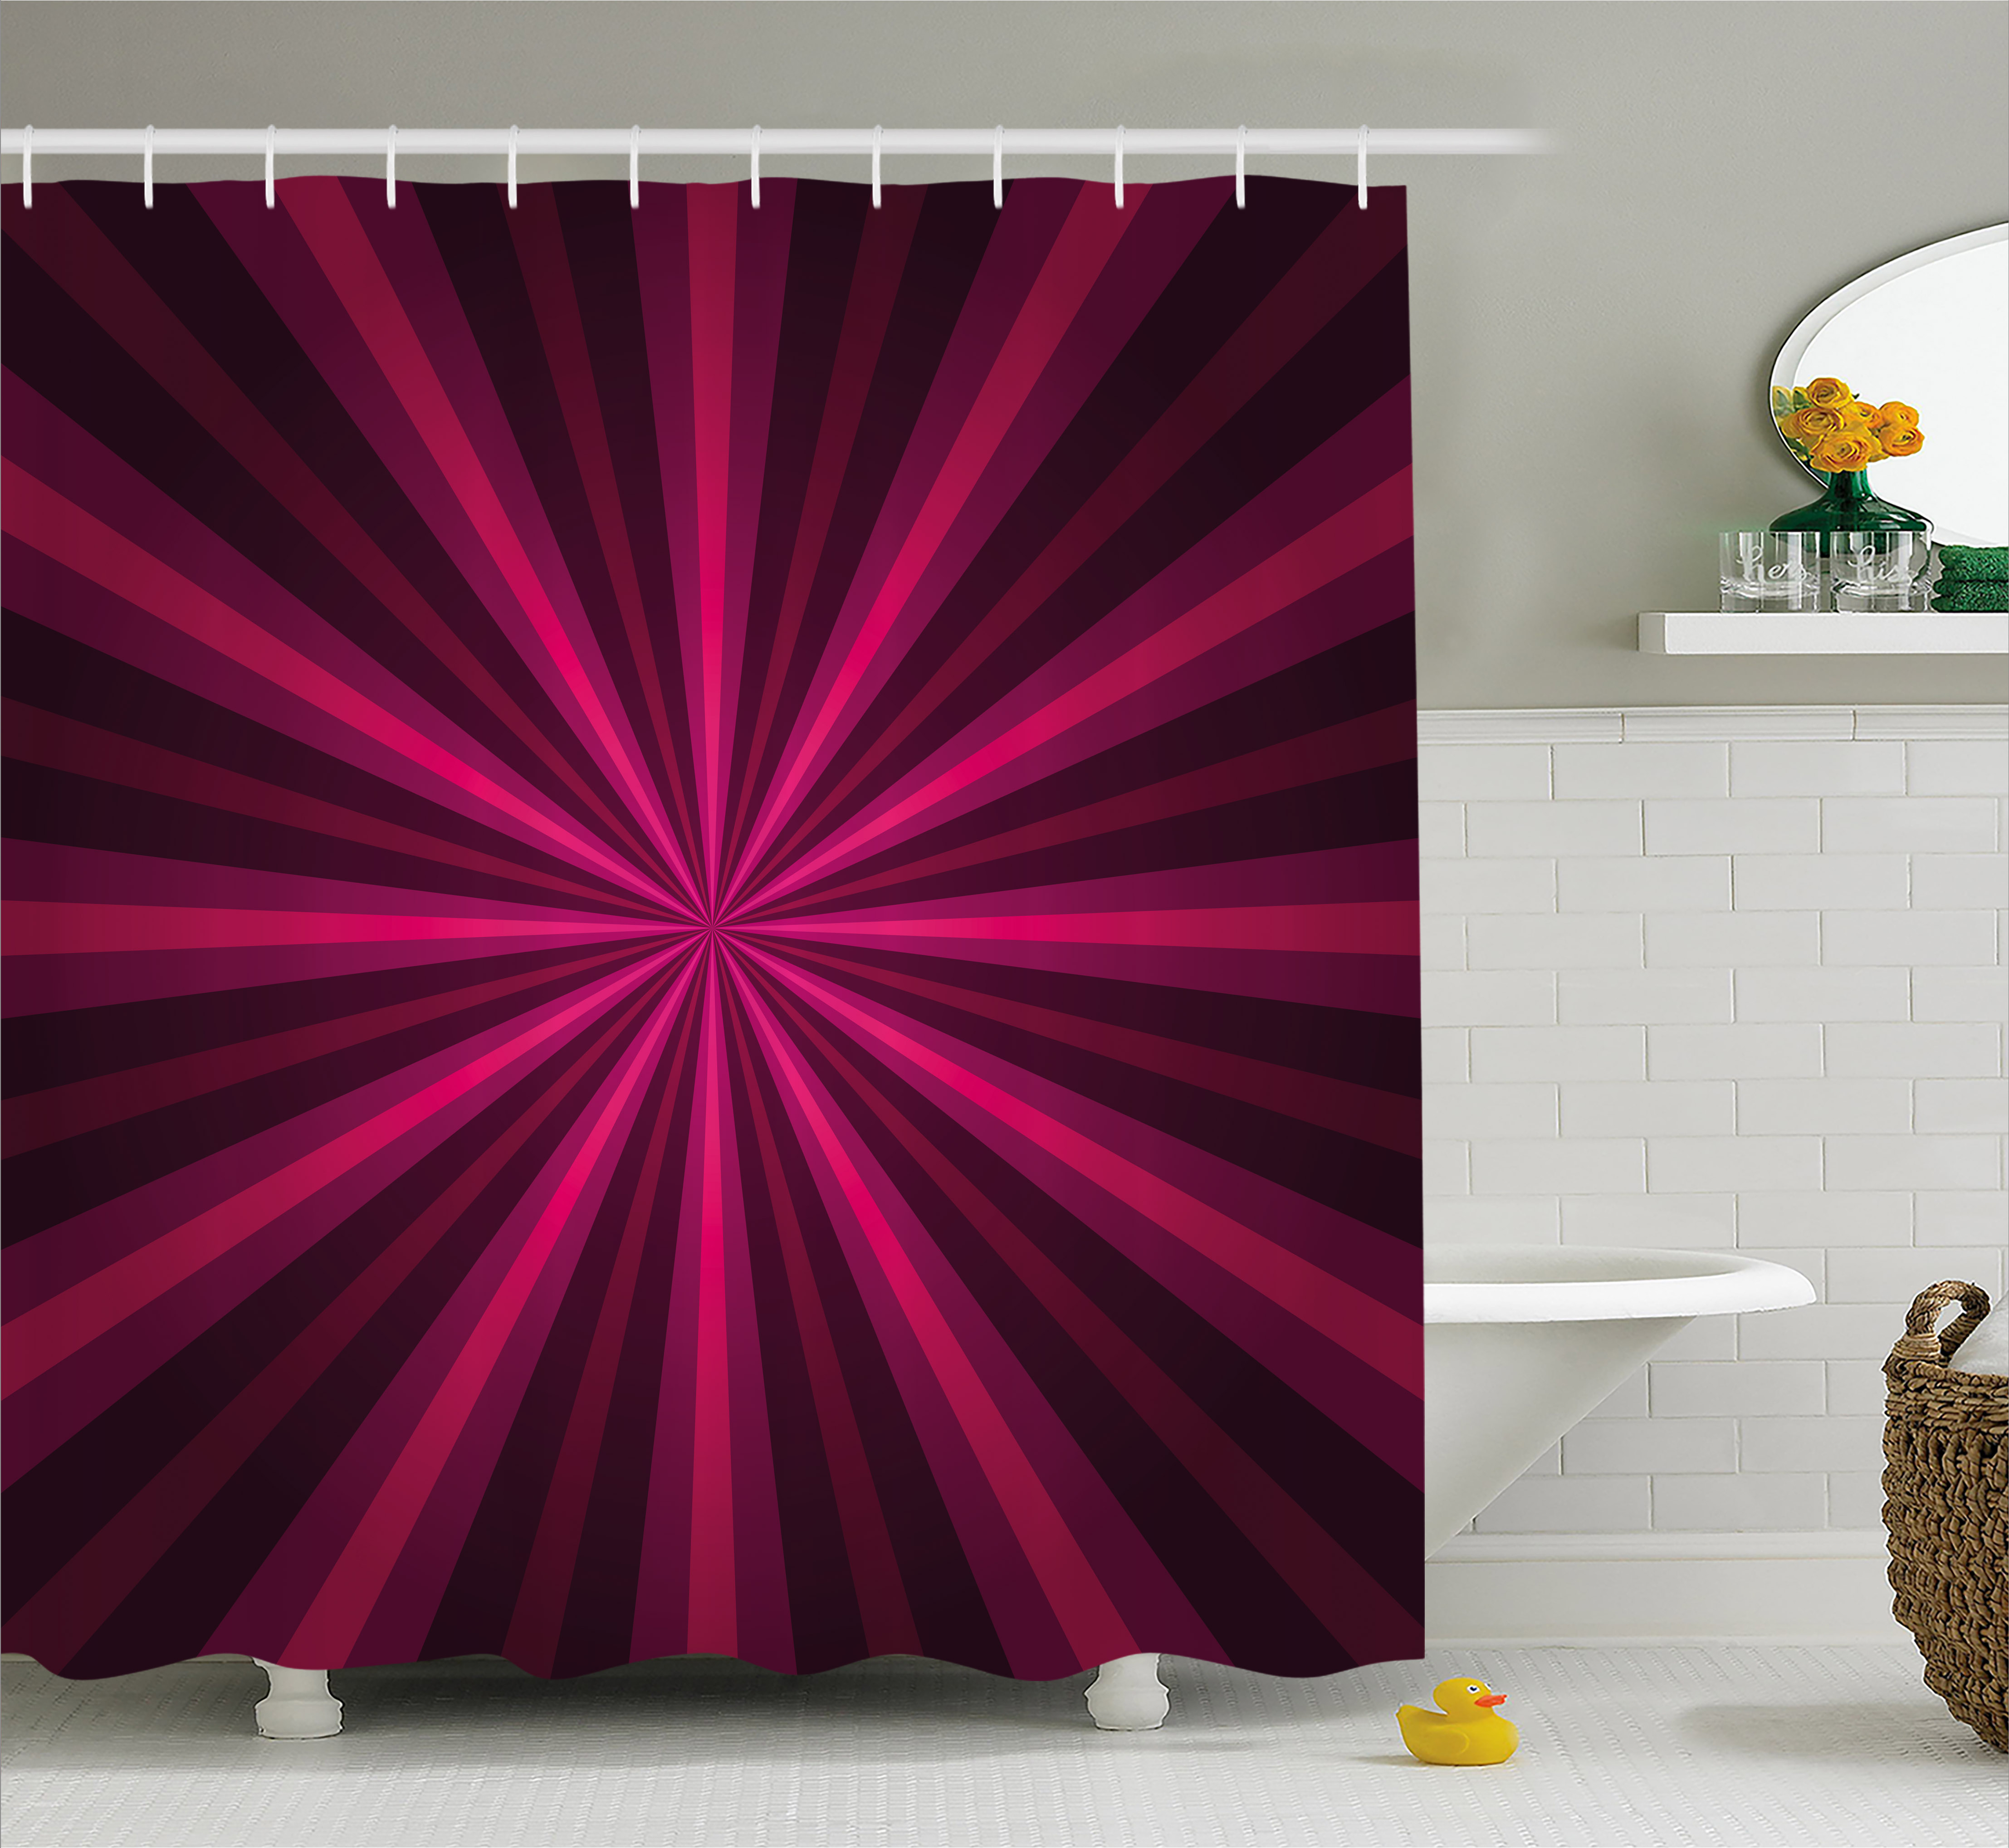 Hot Pink Shower Curtain Abstract Starburst Design Radial Lines Vibrant Colored Beams Futuristic Fabric Bathroom Set With Hooks Fuchsia Purple